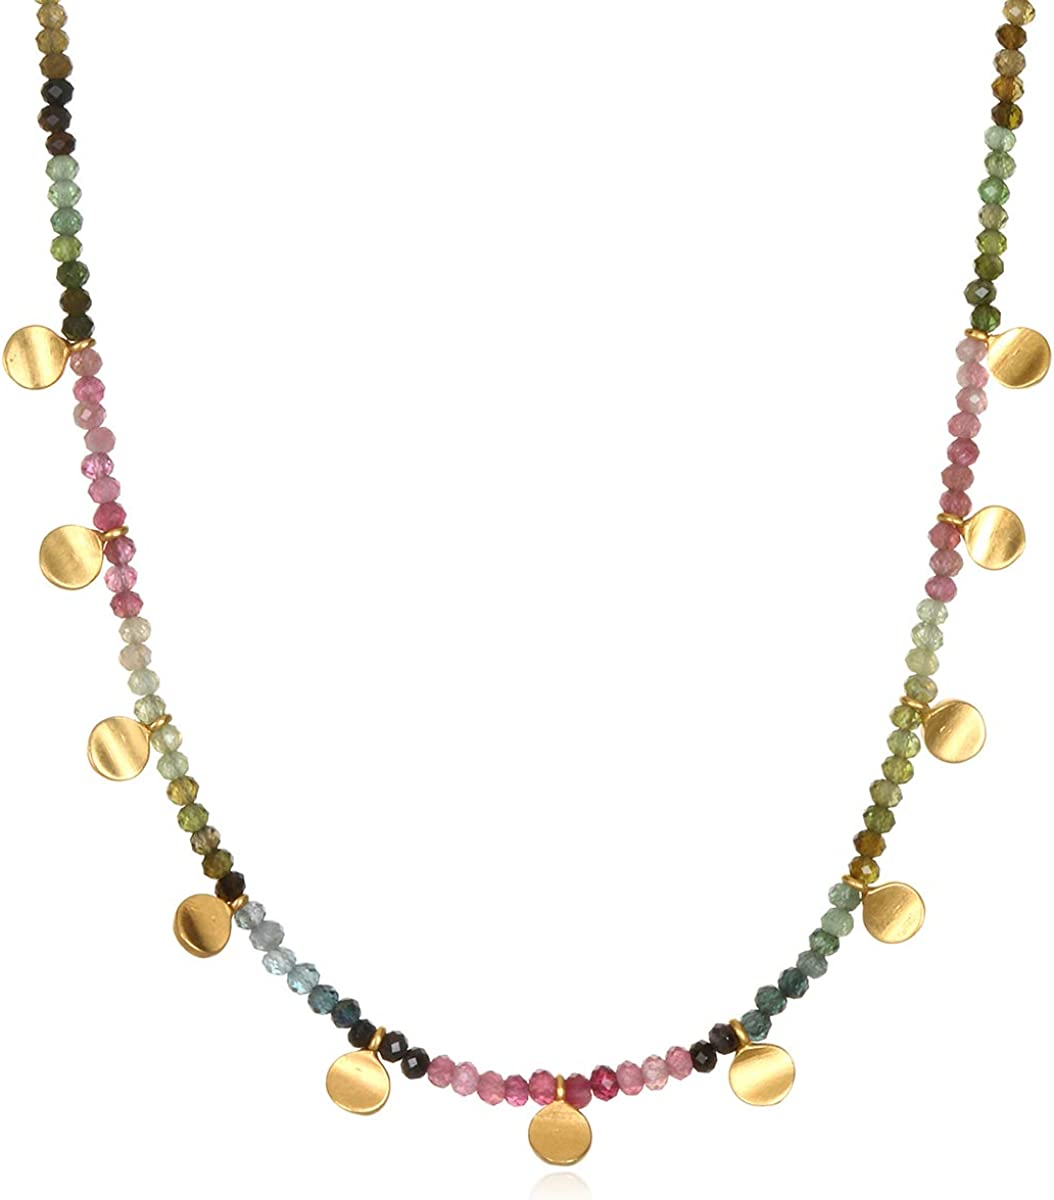 Satya Jewelry Tourmaline Gold Moon Choker Necklace 14-Inch +2 Extension, Multi, One Size